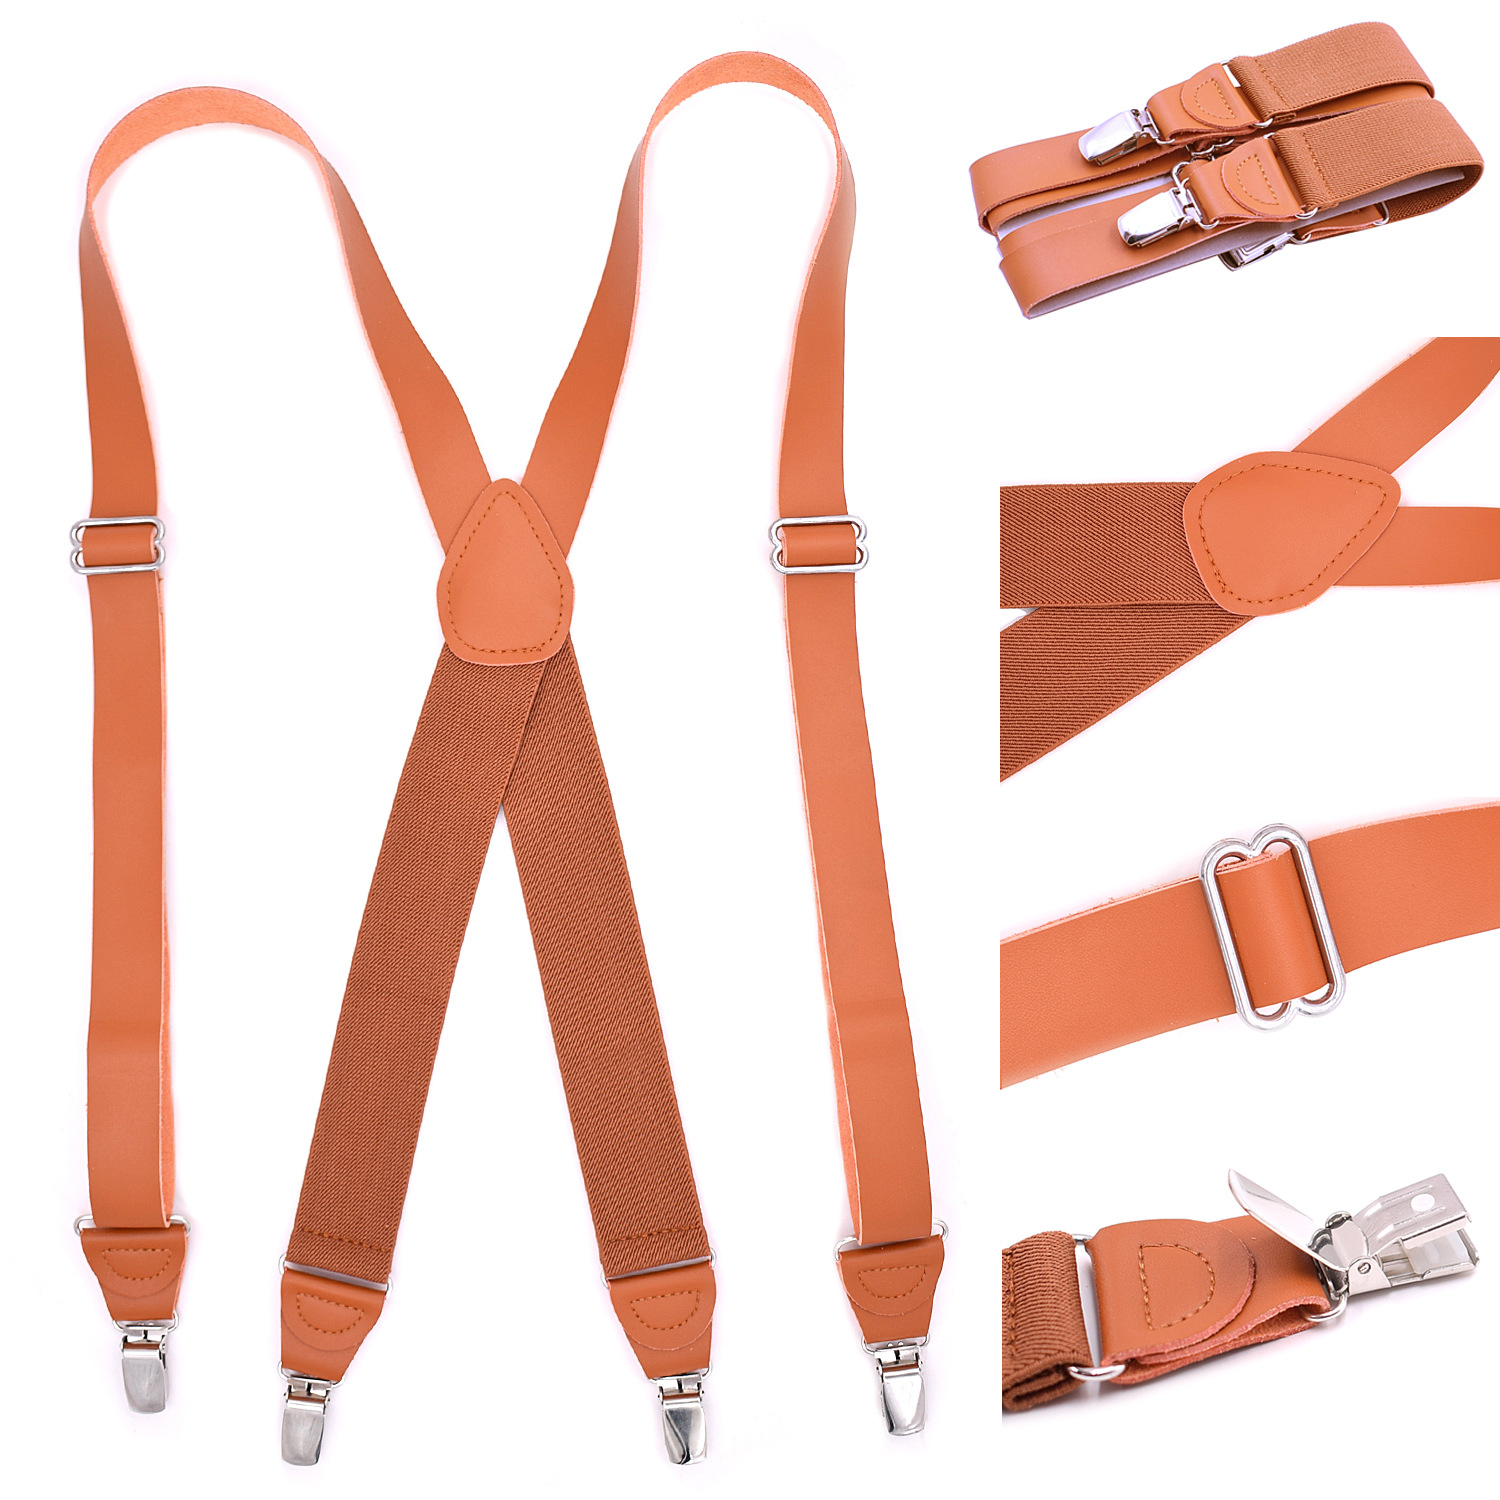 Brand Adult Elasticity 4 Clips X Leather Strap Unisex Elastic Adjustable Strap Clips High Quality Shirt Suspenders